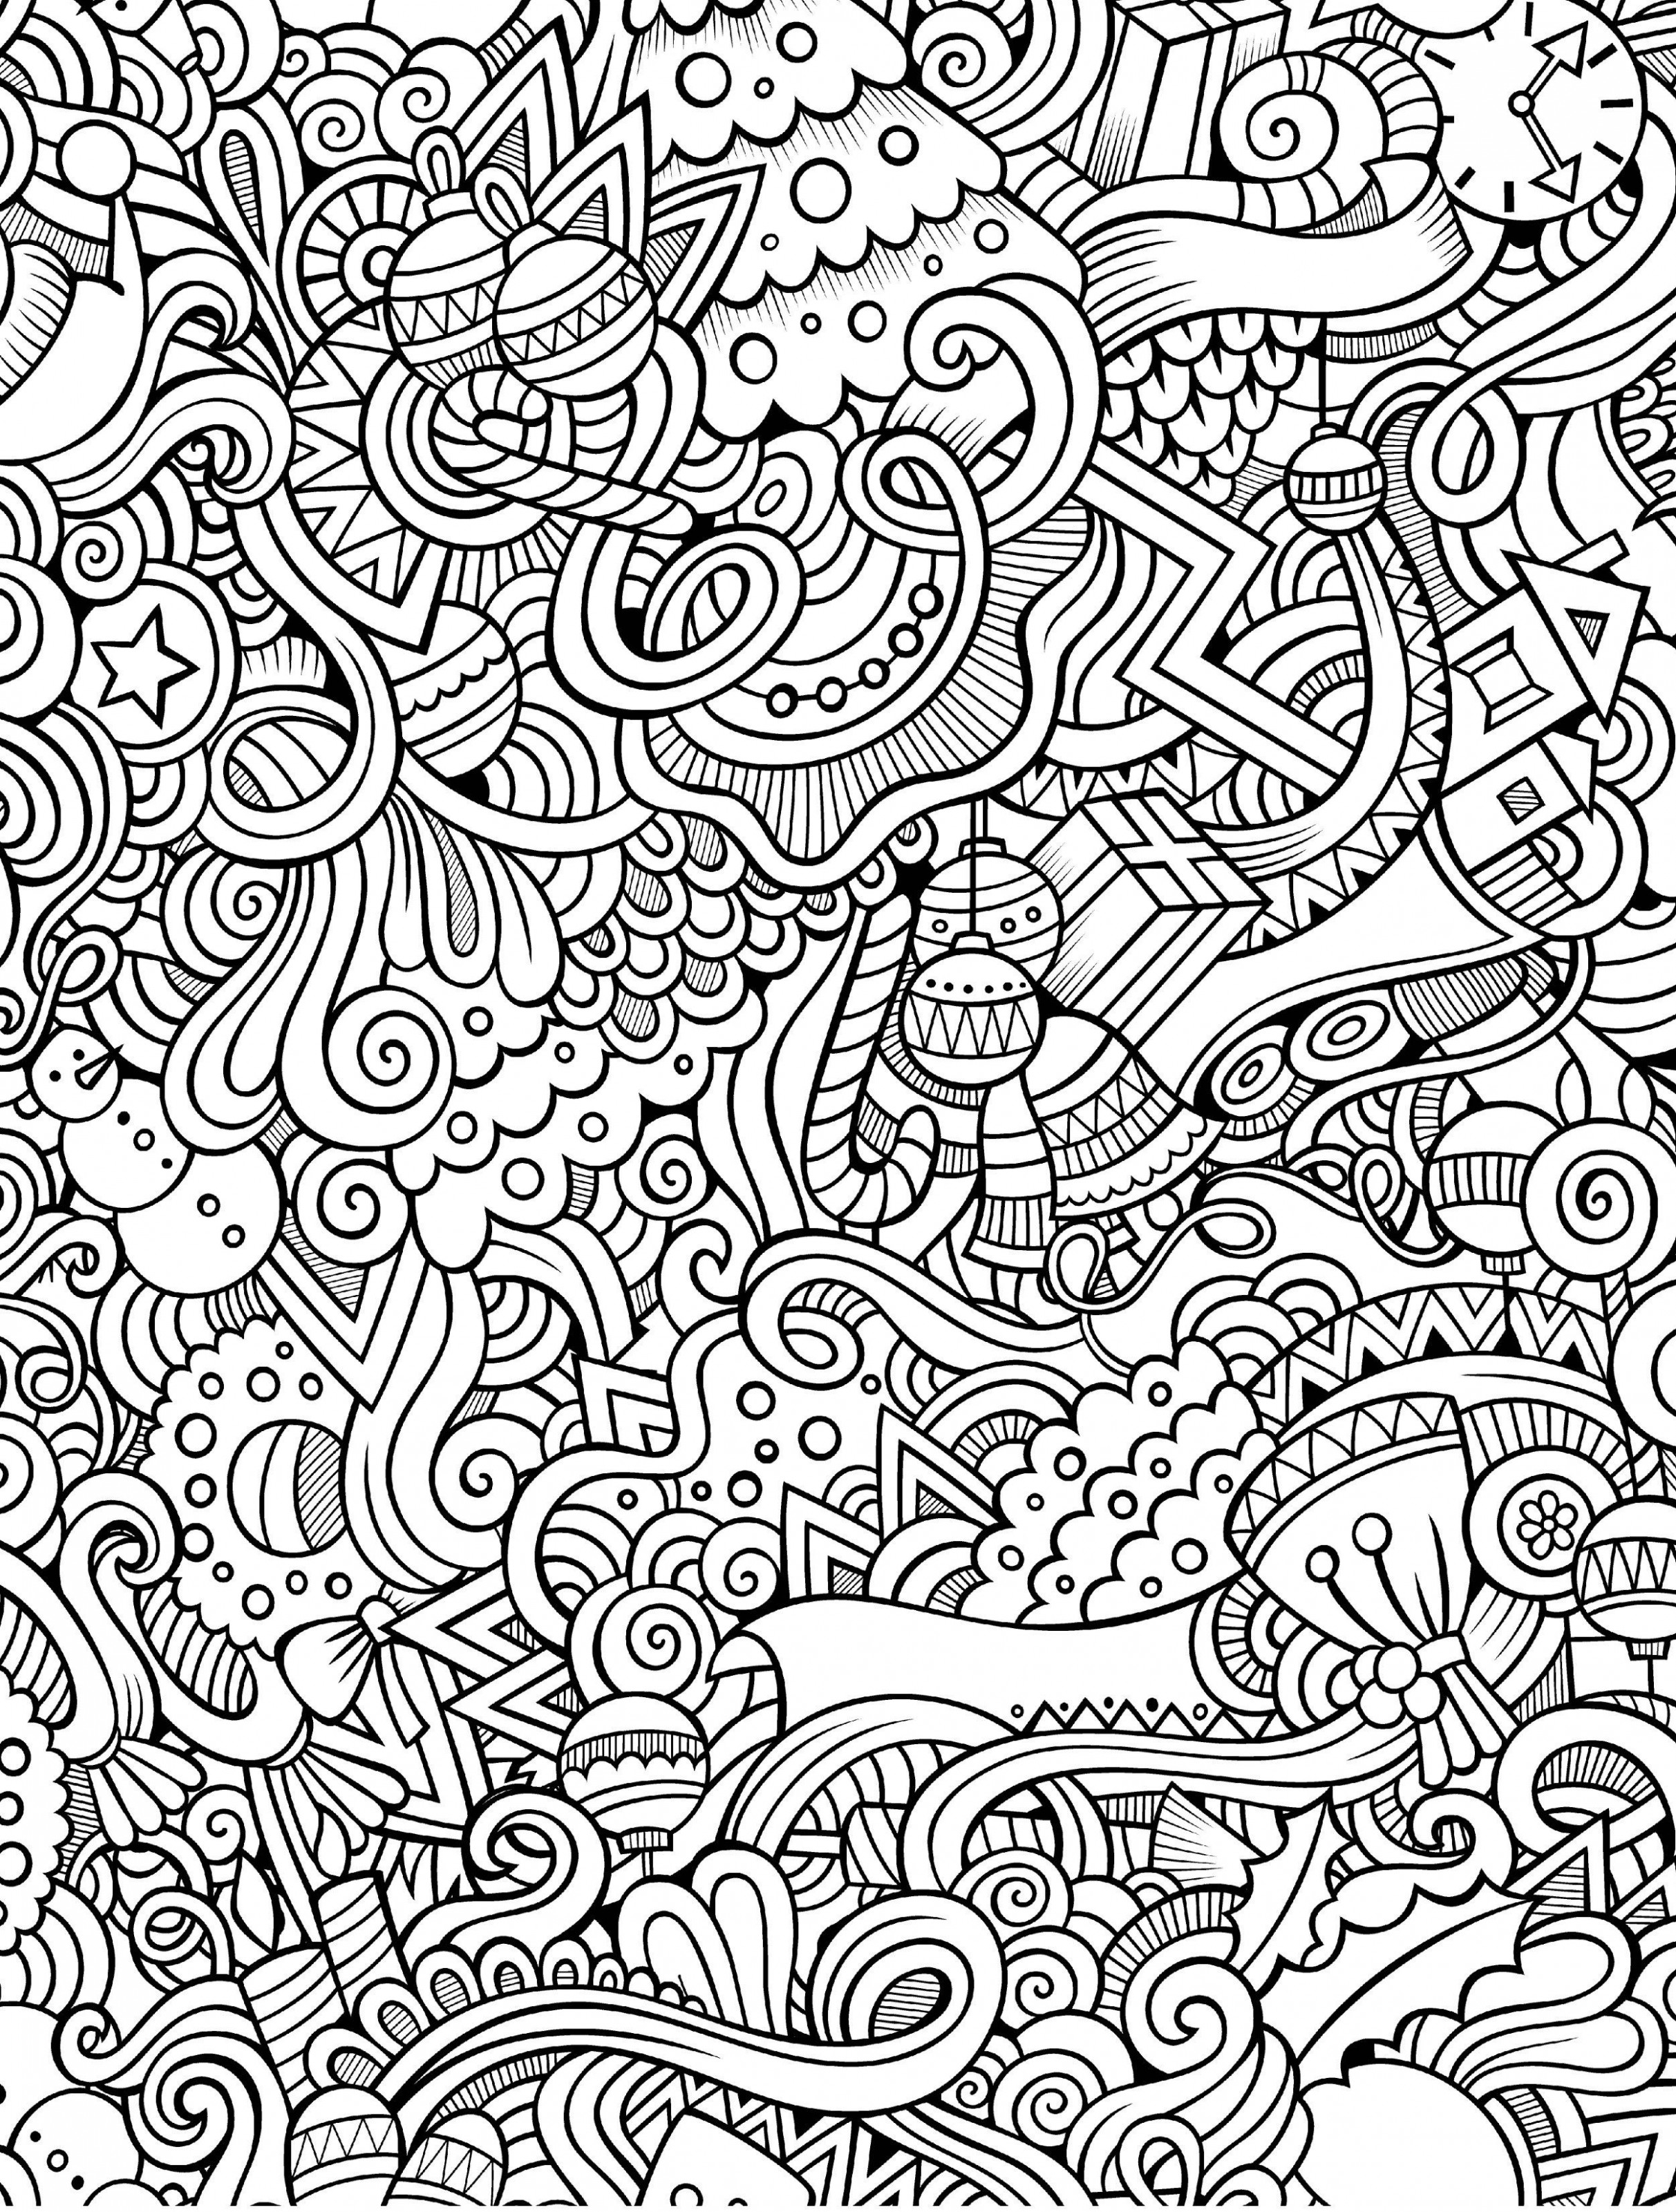 18 Free Printable Holiday Adult Coloring Pages   Coloring pages ..